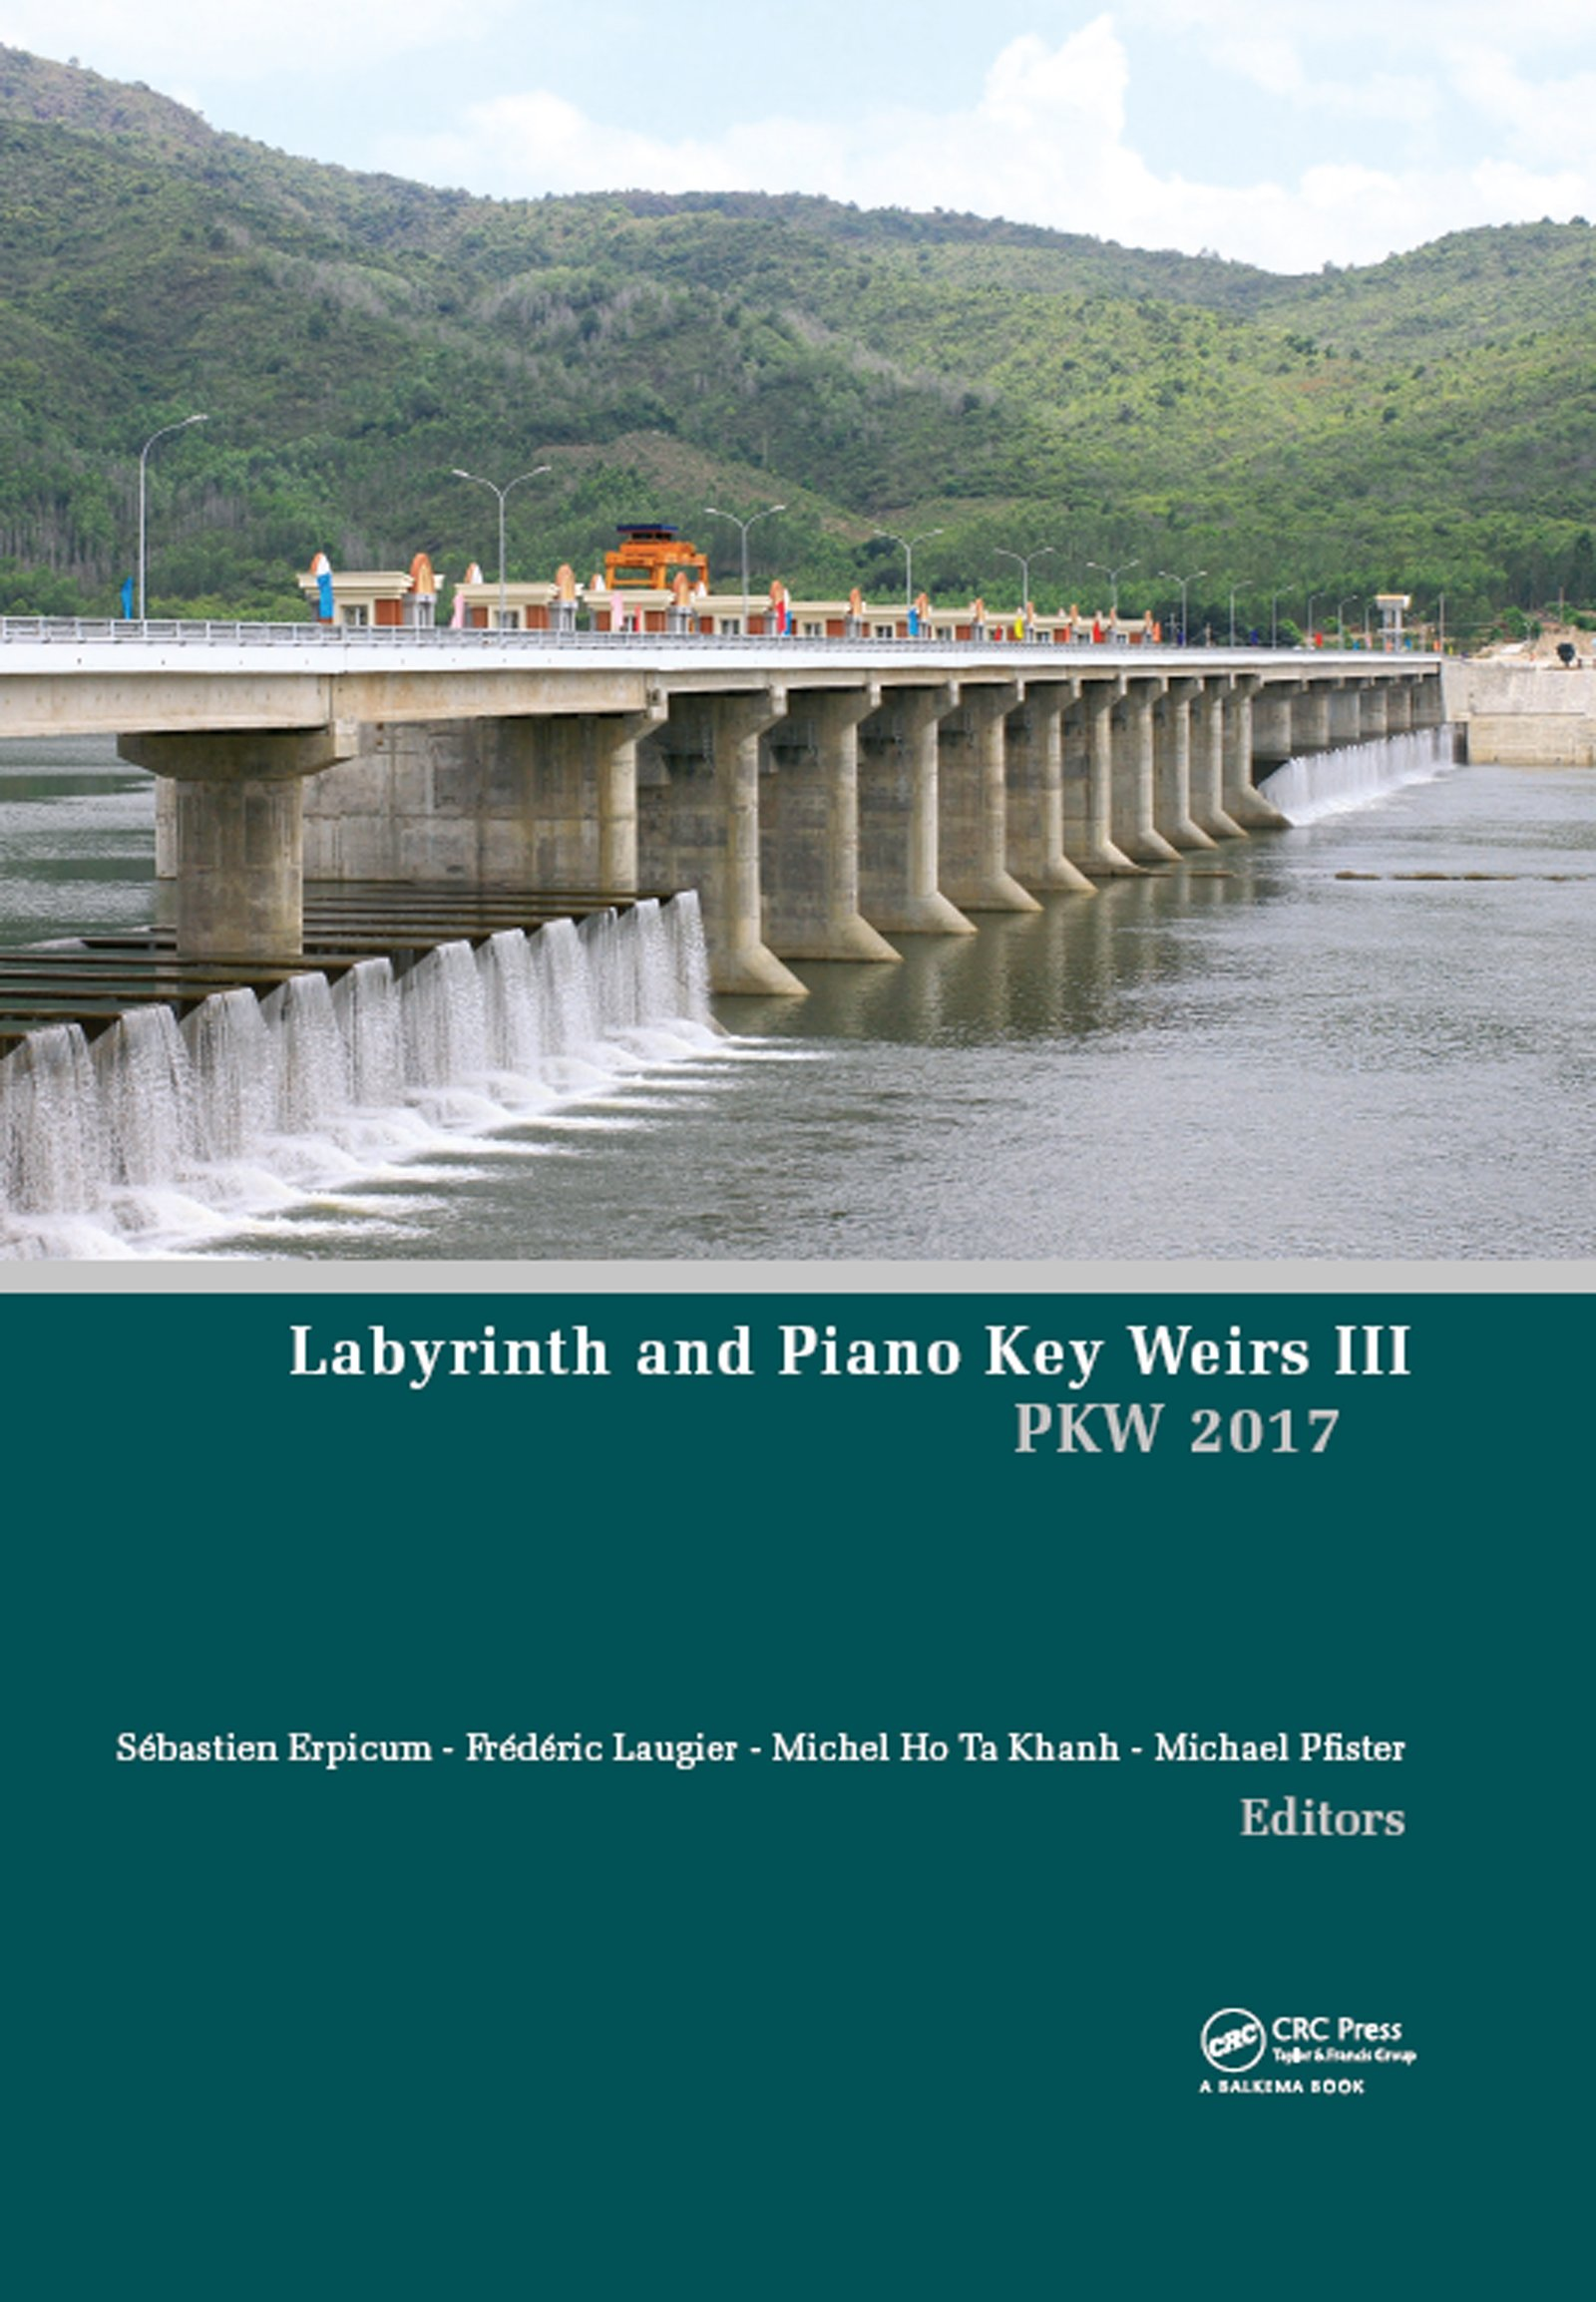 Labyrinth and Piano Key Weirs III: Proceedings of the 3rd International Workshop on Labyrinth and Piano Key Weirs (PKW 2017), February 22-24, 2017, Qui Nhon, Vietnam, 1st Edition (Hardback) book cover